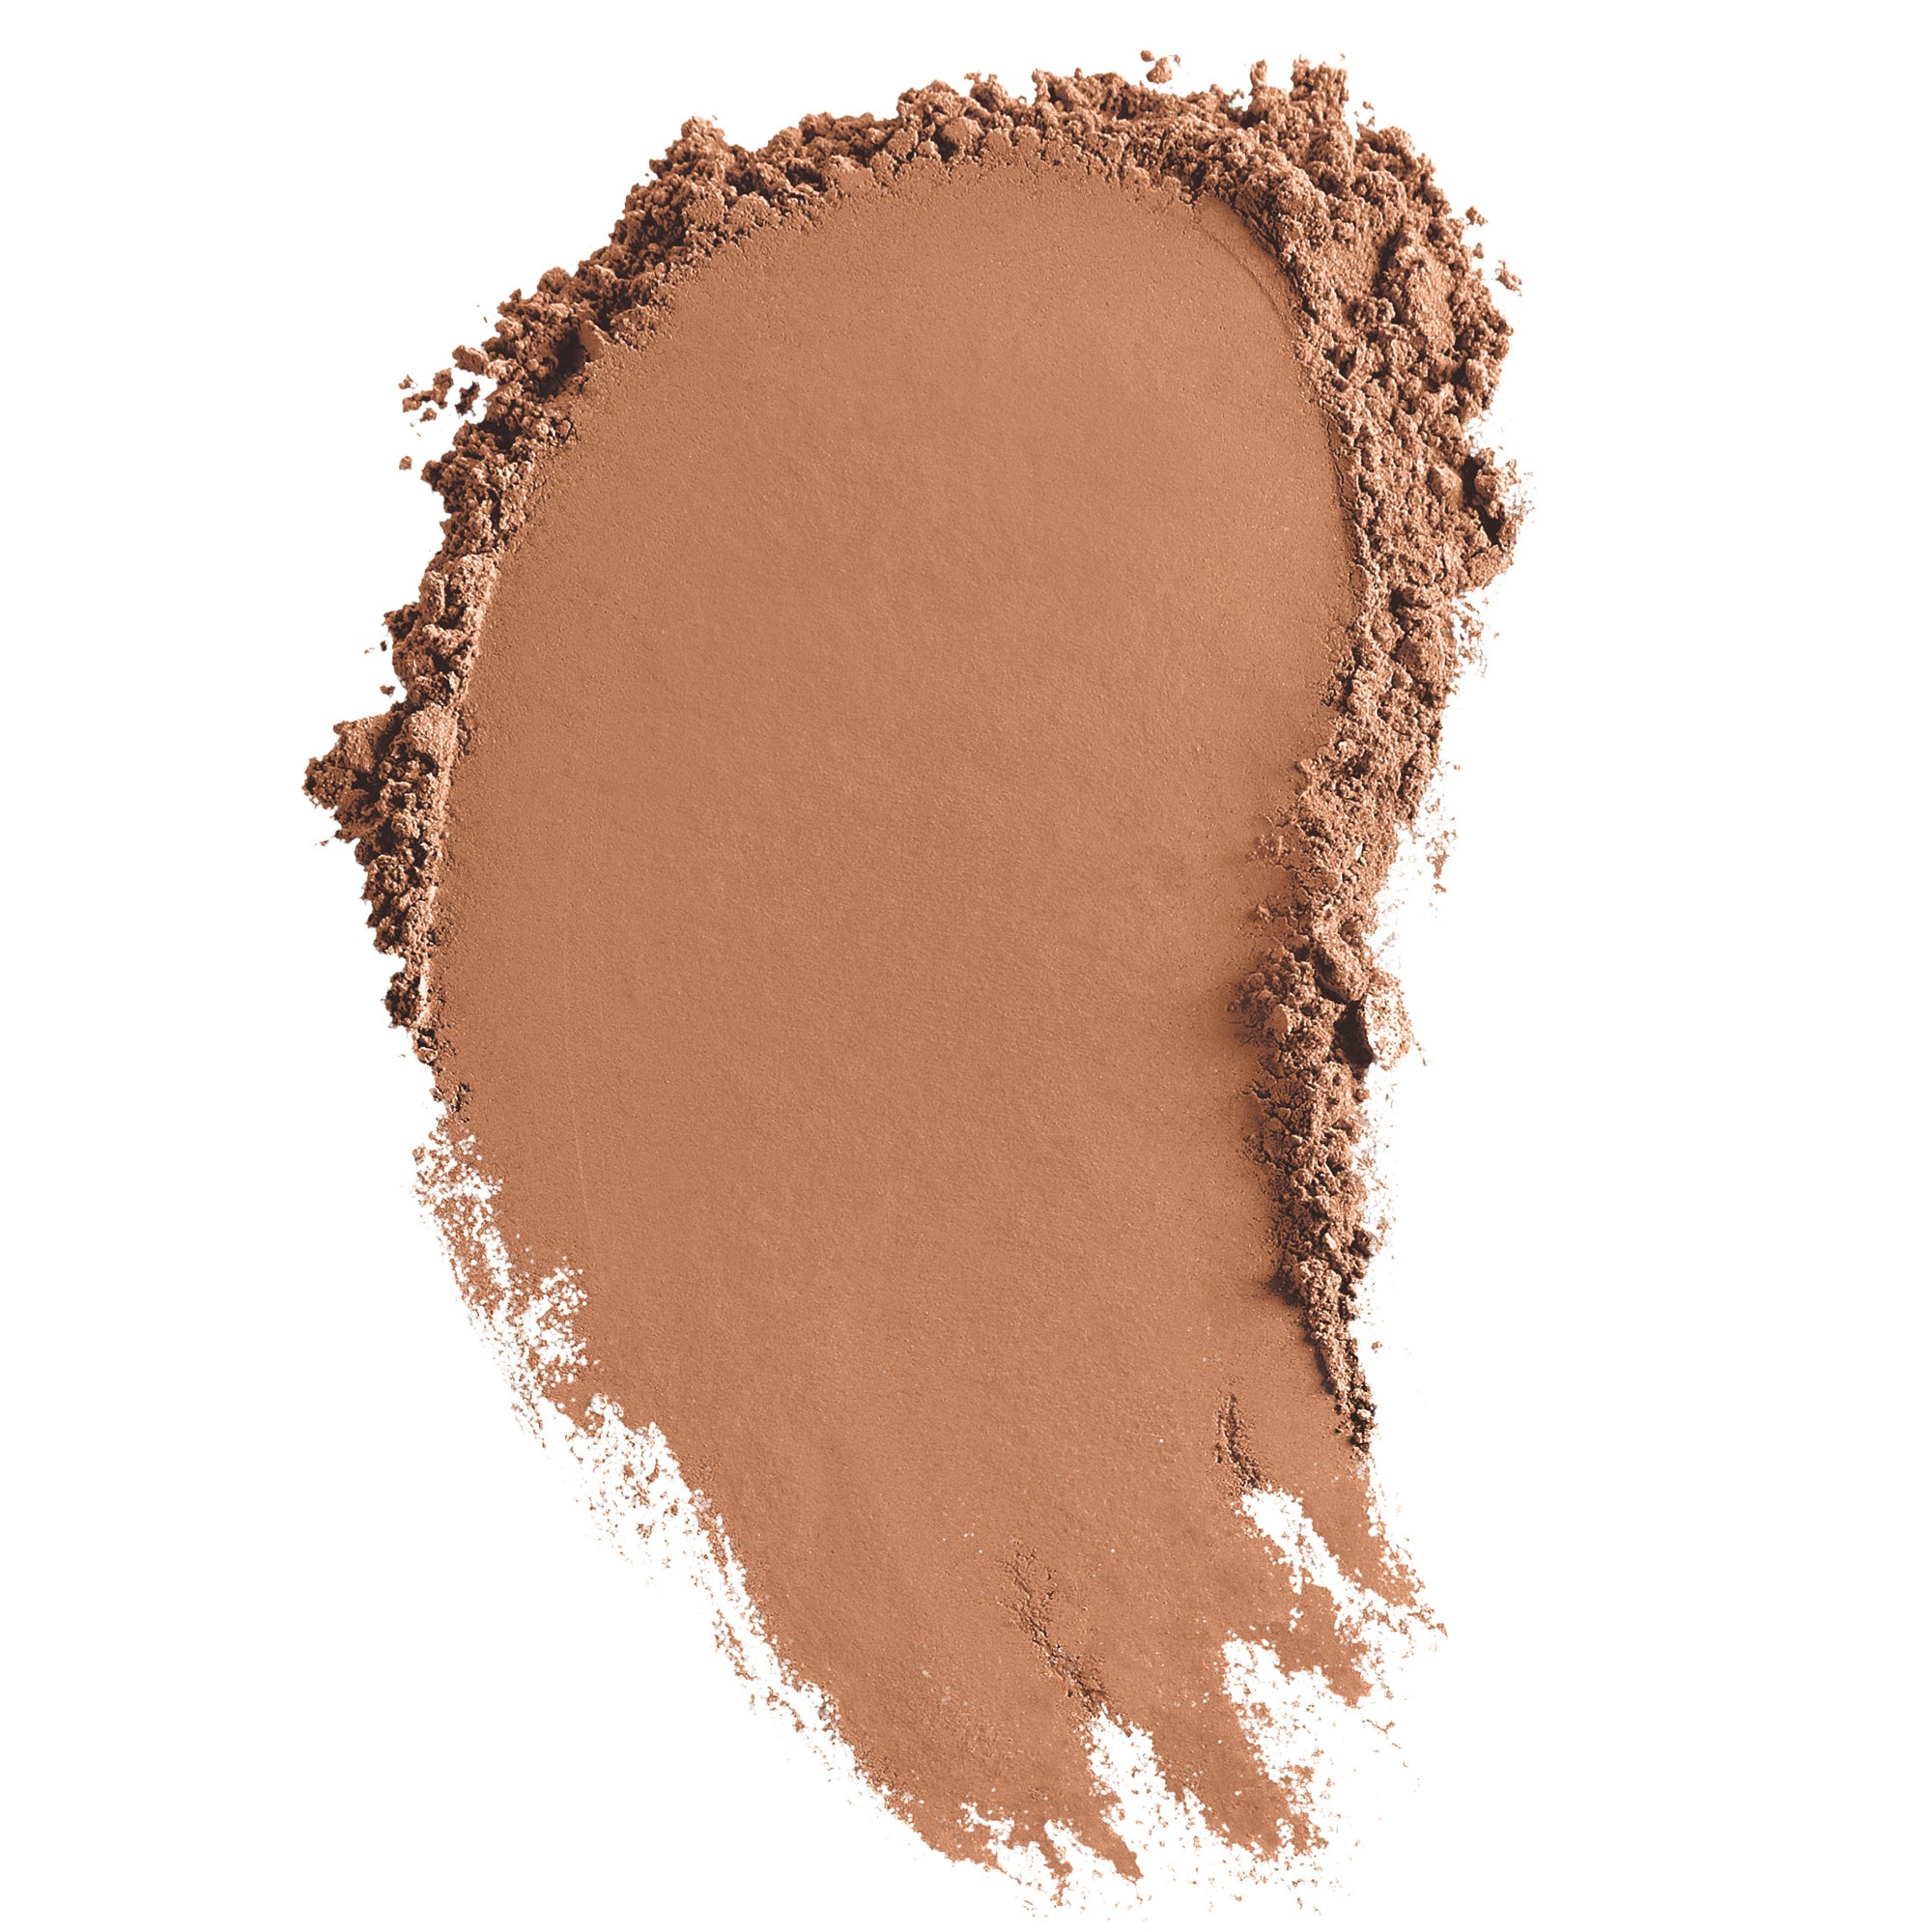 Original Foundation SPF 15 Neutral Dark 24